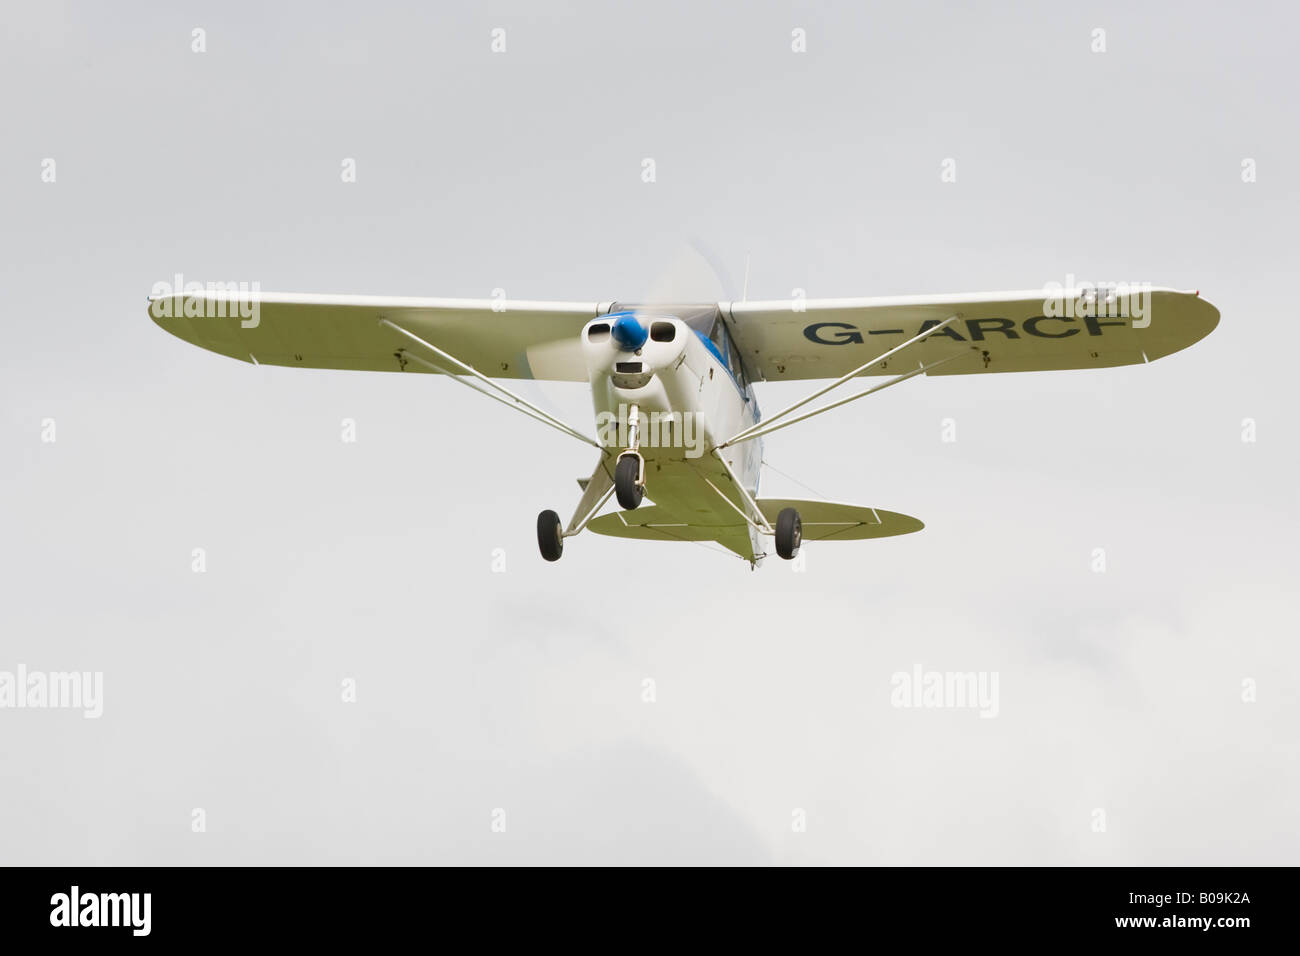 Piper PA-22-150 Caribbean G-ARCF in flight taking off - Stock Image